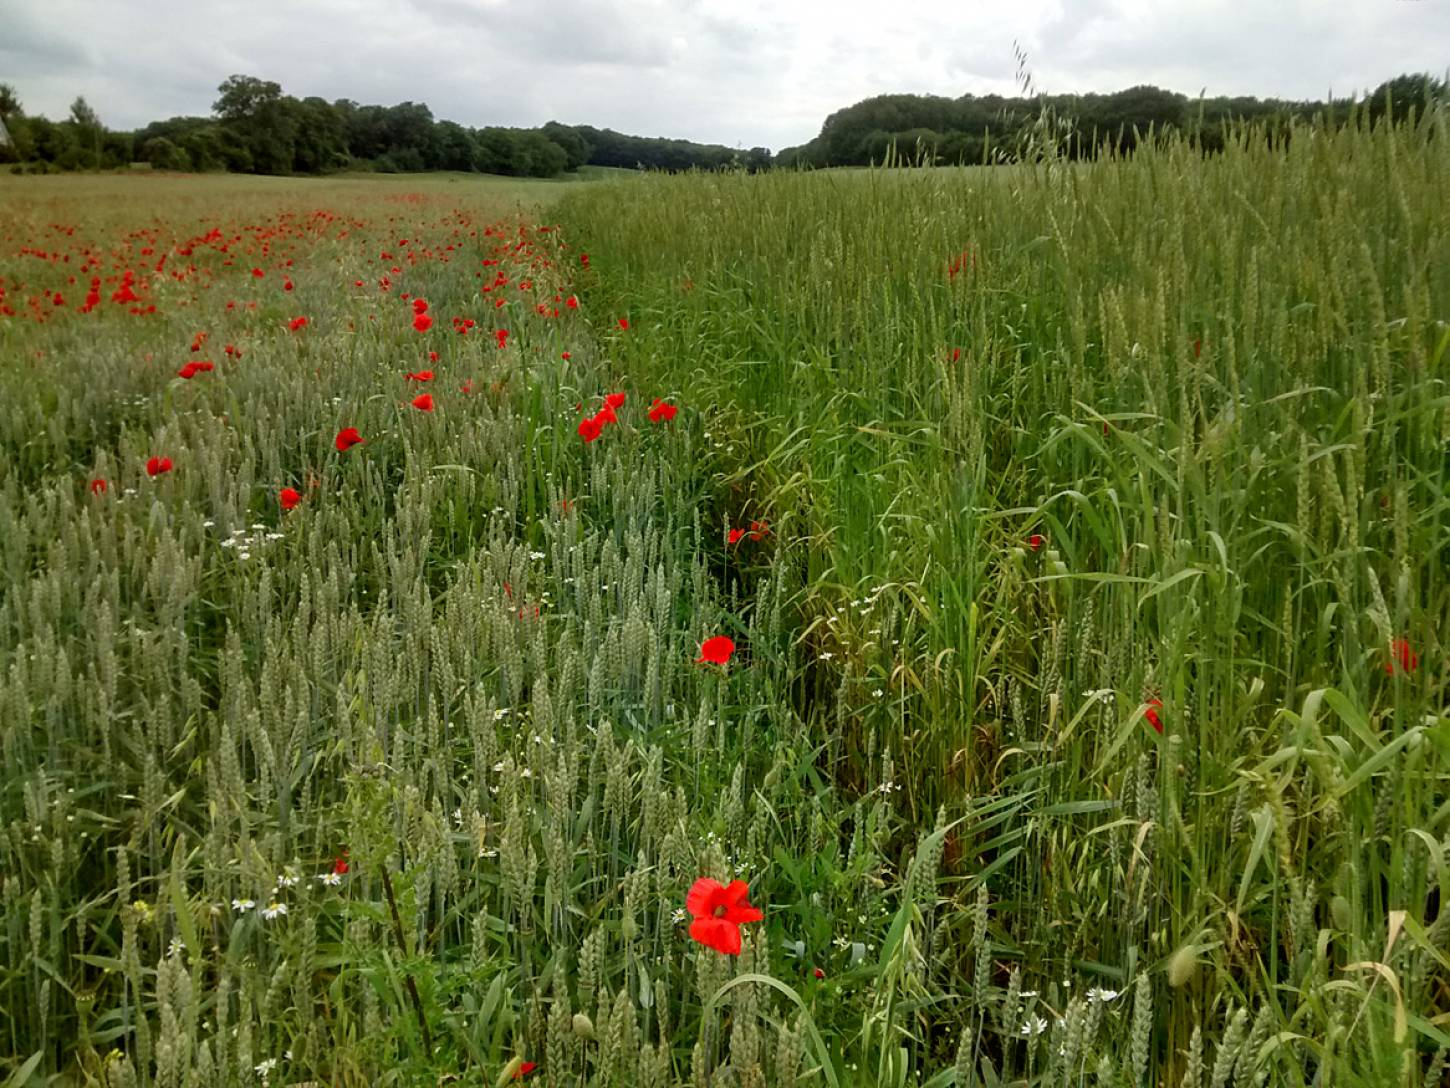 Perry Court biodynamic Farm review - modern wheat meets big sister - 3:51pm&nbsp;23<sup>rd</sup>&nbsp;Jun.&nbsp;'15  <a href='http://maps.google.com/?t=h&q=51.241413,1.021581&z=15' target=_blank><img src='http://www.brockwell-bake.org.uk/img/marker.png' style='border:none;vertical-align:top' height=16px></a>